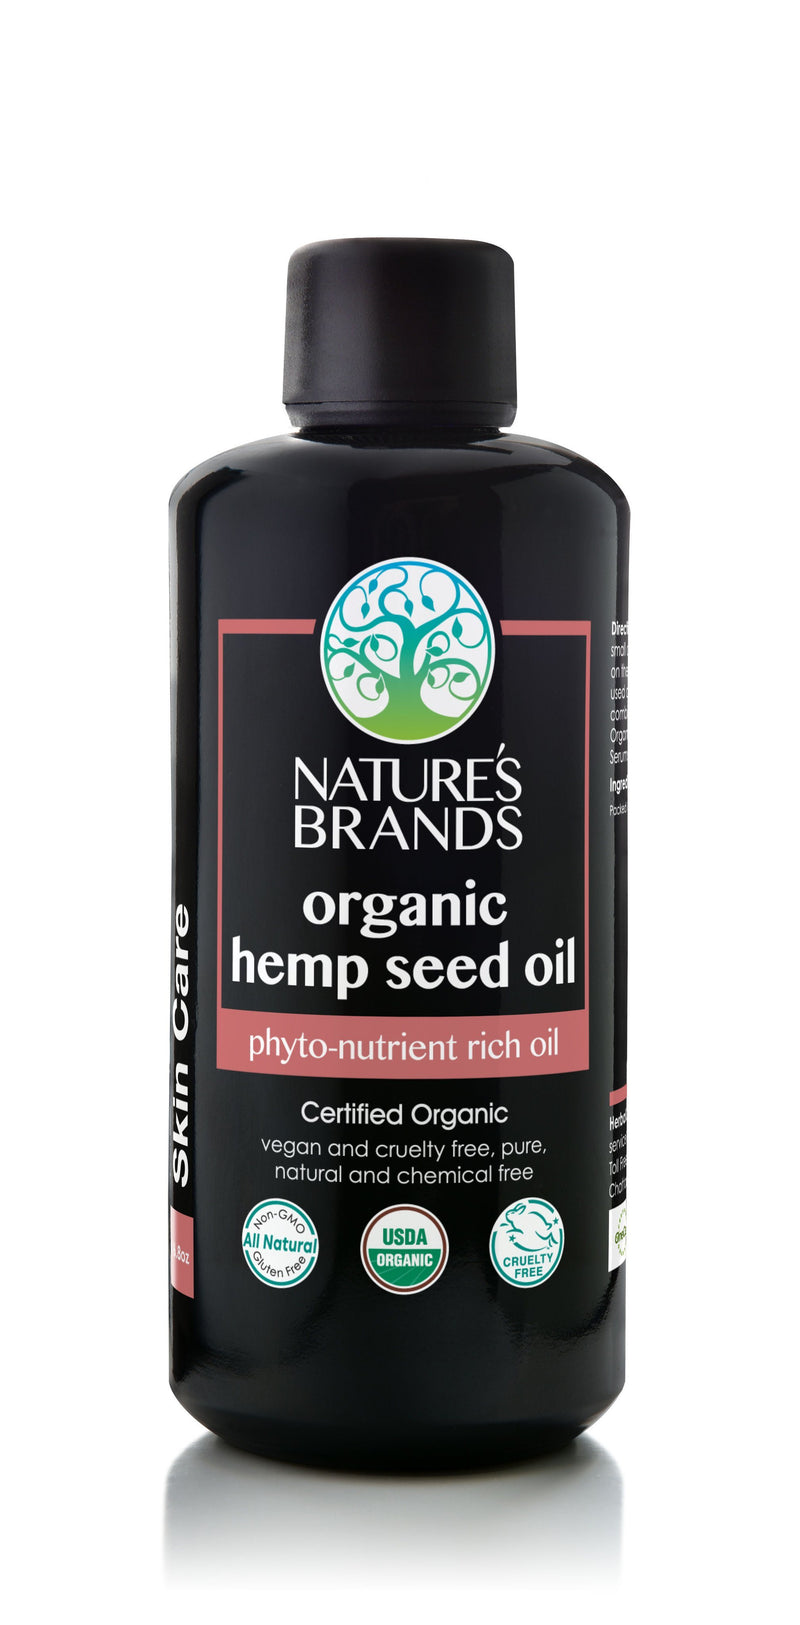 Herbal Choice Mari Organic Hemp Seed Oil - Herbal Choice Mari Organic Hemp Seed Oil - Herbal Choice Mari Organic Hemp Seed Oil